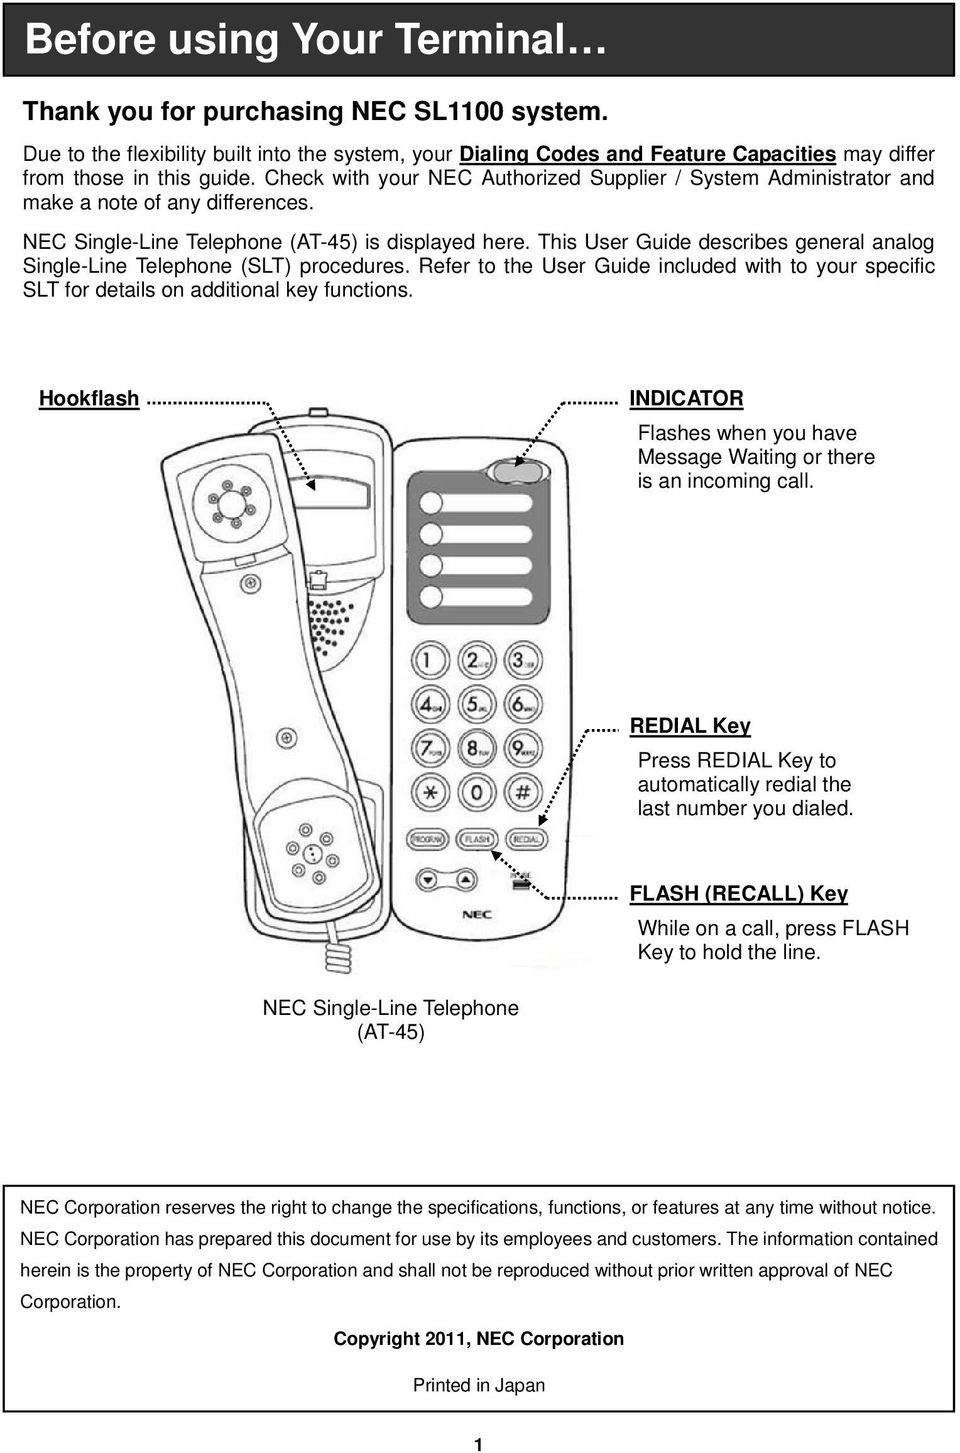 This User Guide describes general analog Single-Line Telephone (SLT) procedures. Refer to the User Guide included with to your specific SLT for details on additional key functions.